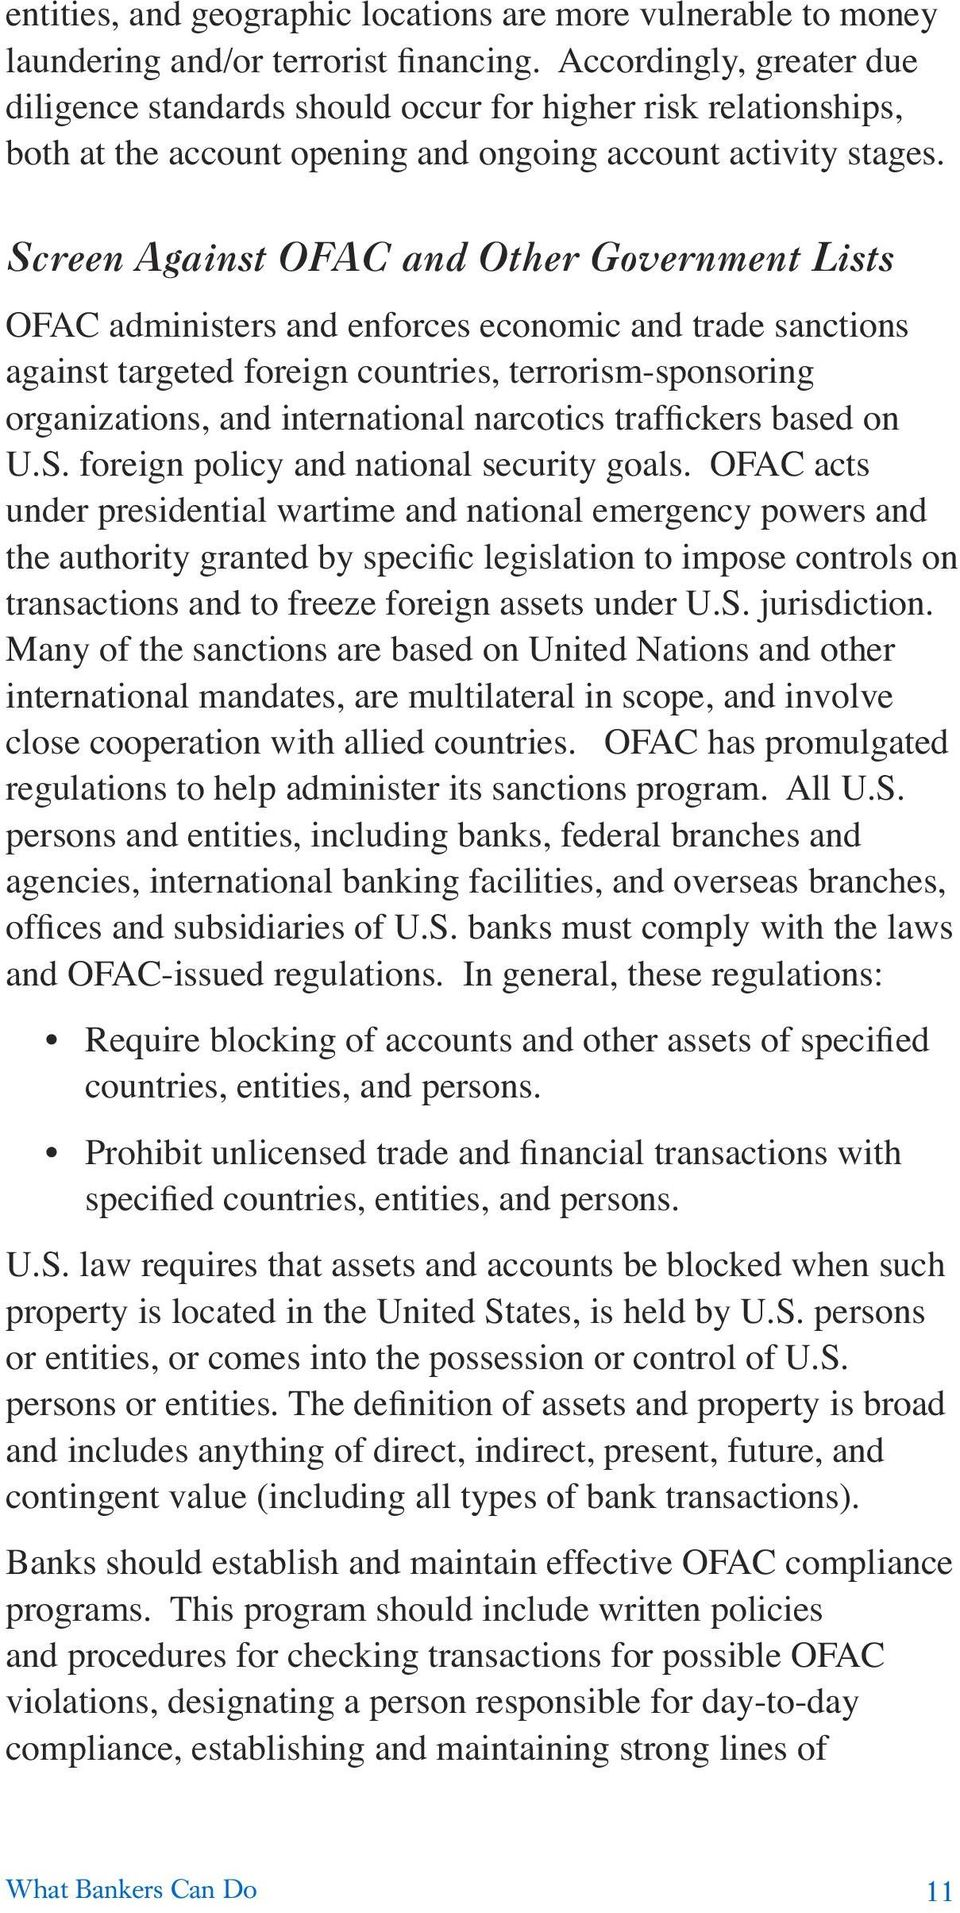 Screen Against OFAC and Other Government Lists OFAC administers and enforces economic and trade sanctions against targeted foreign countries, terrorism-sponsoring organizations, and international